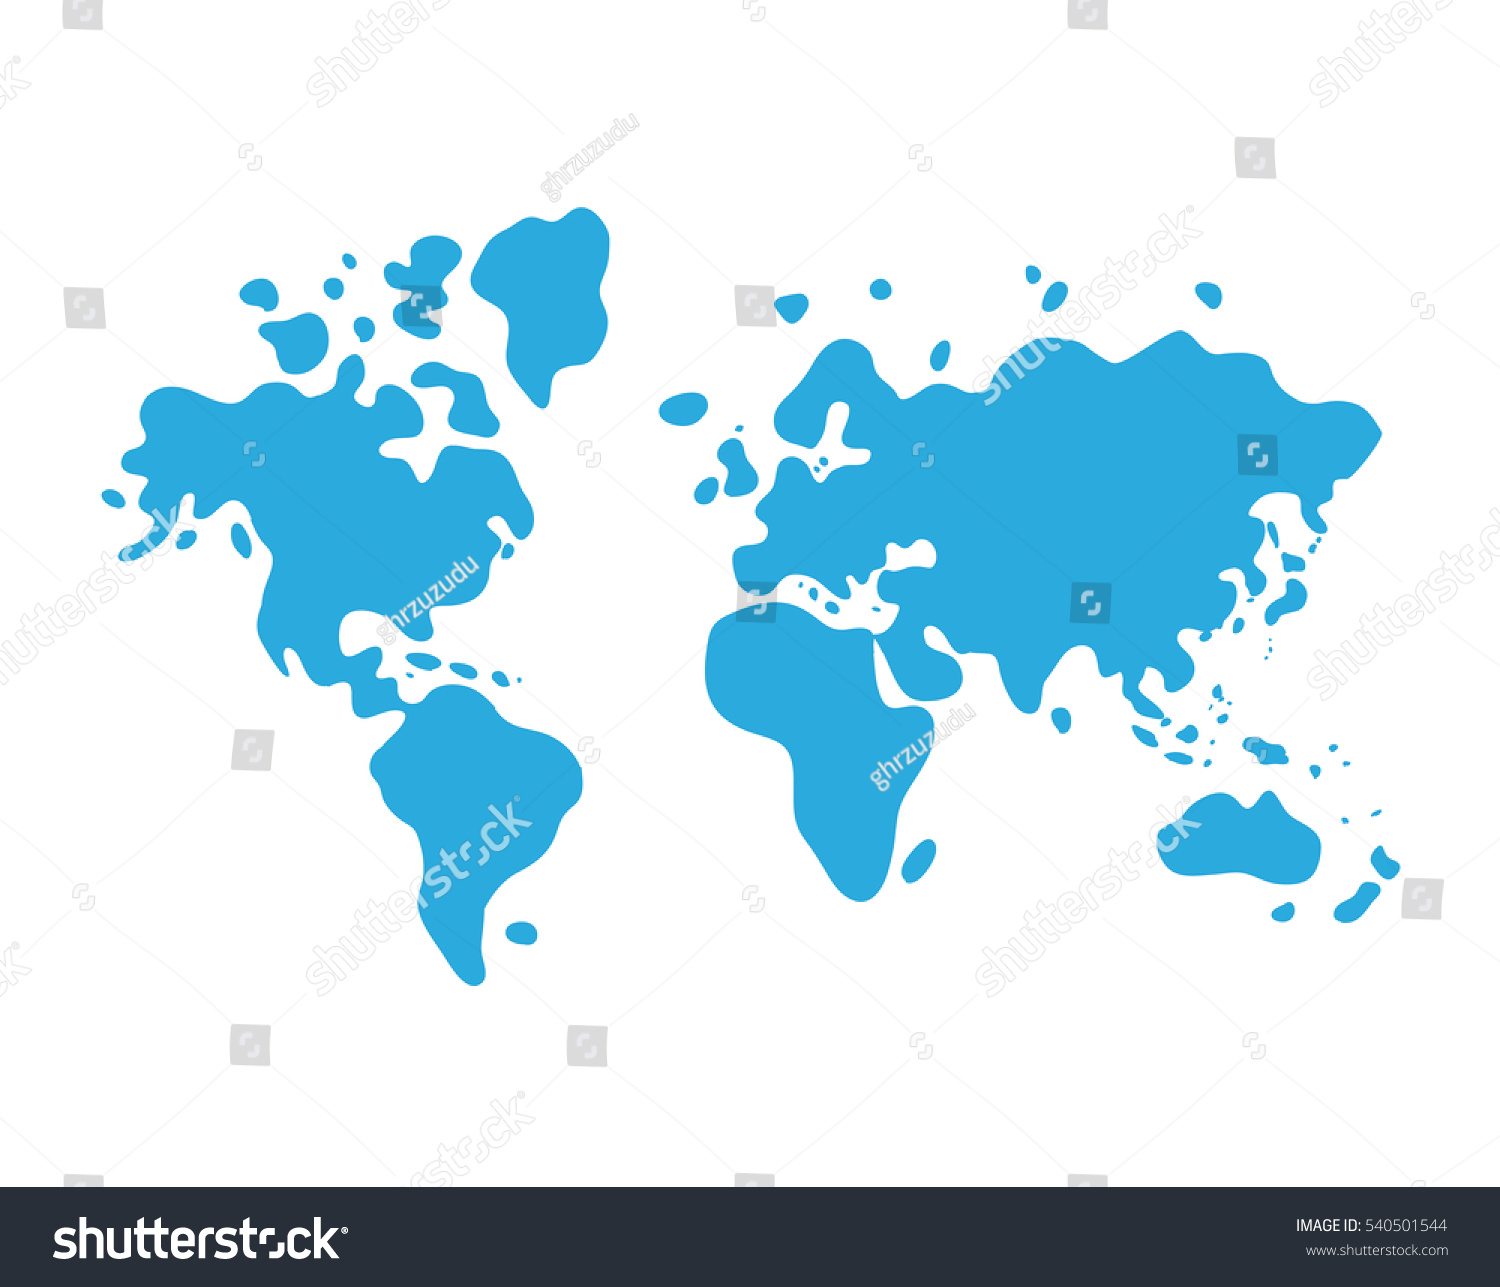 Blue world map cartoon icon stock vector royalty free 540501544 blue world map cartoon icon gumiabroncs Gallery